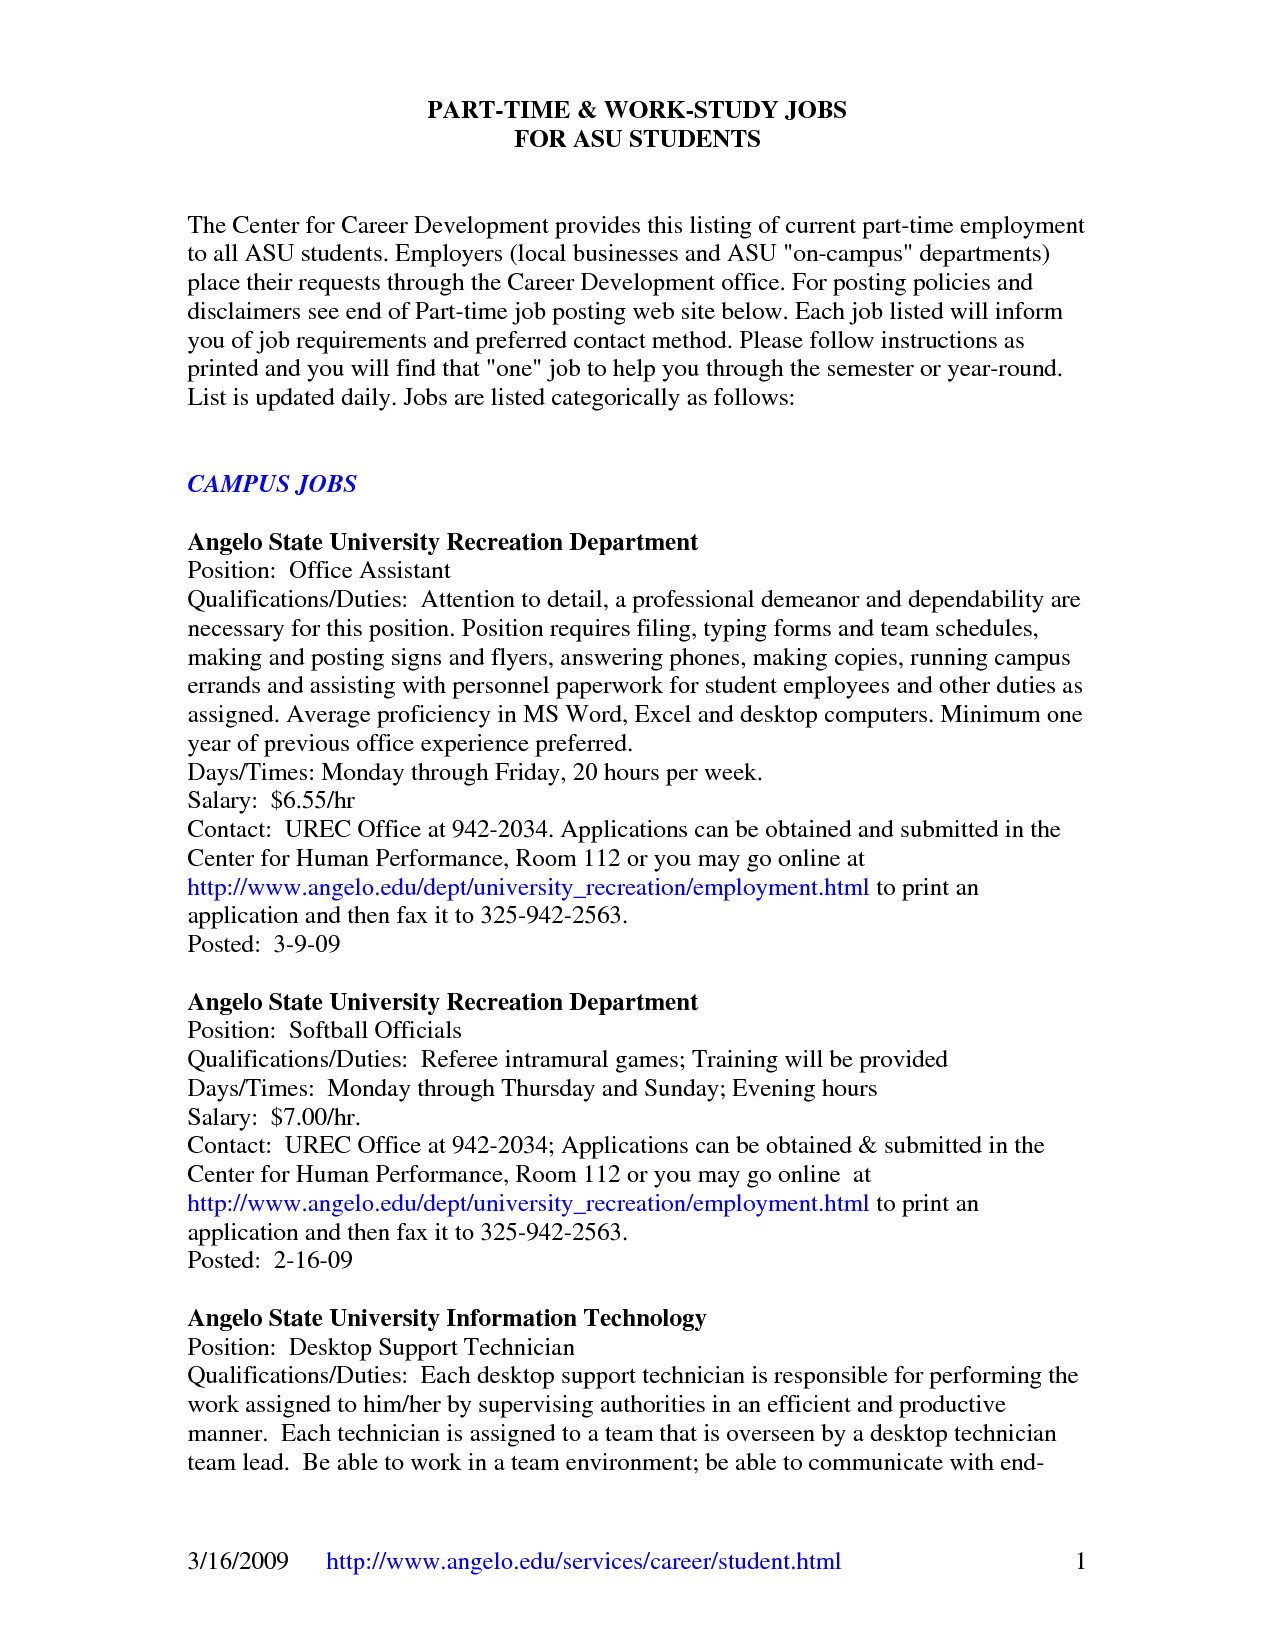 Resume Examples For 19 Year Old Resume examples, Job